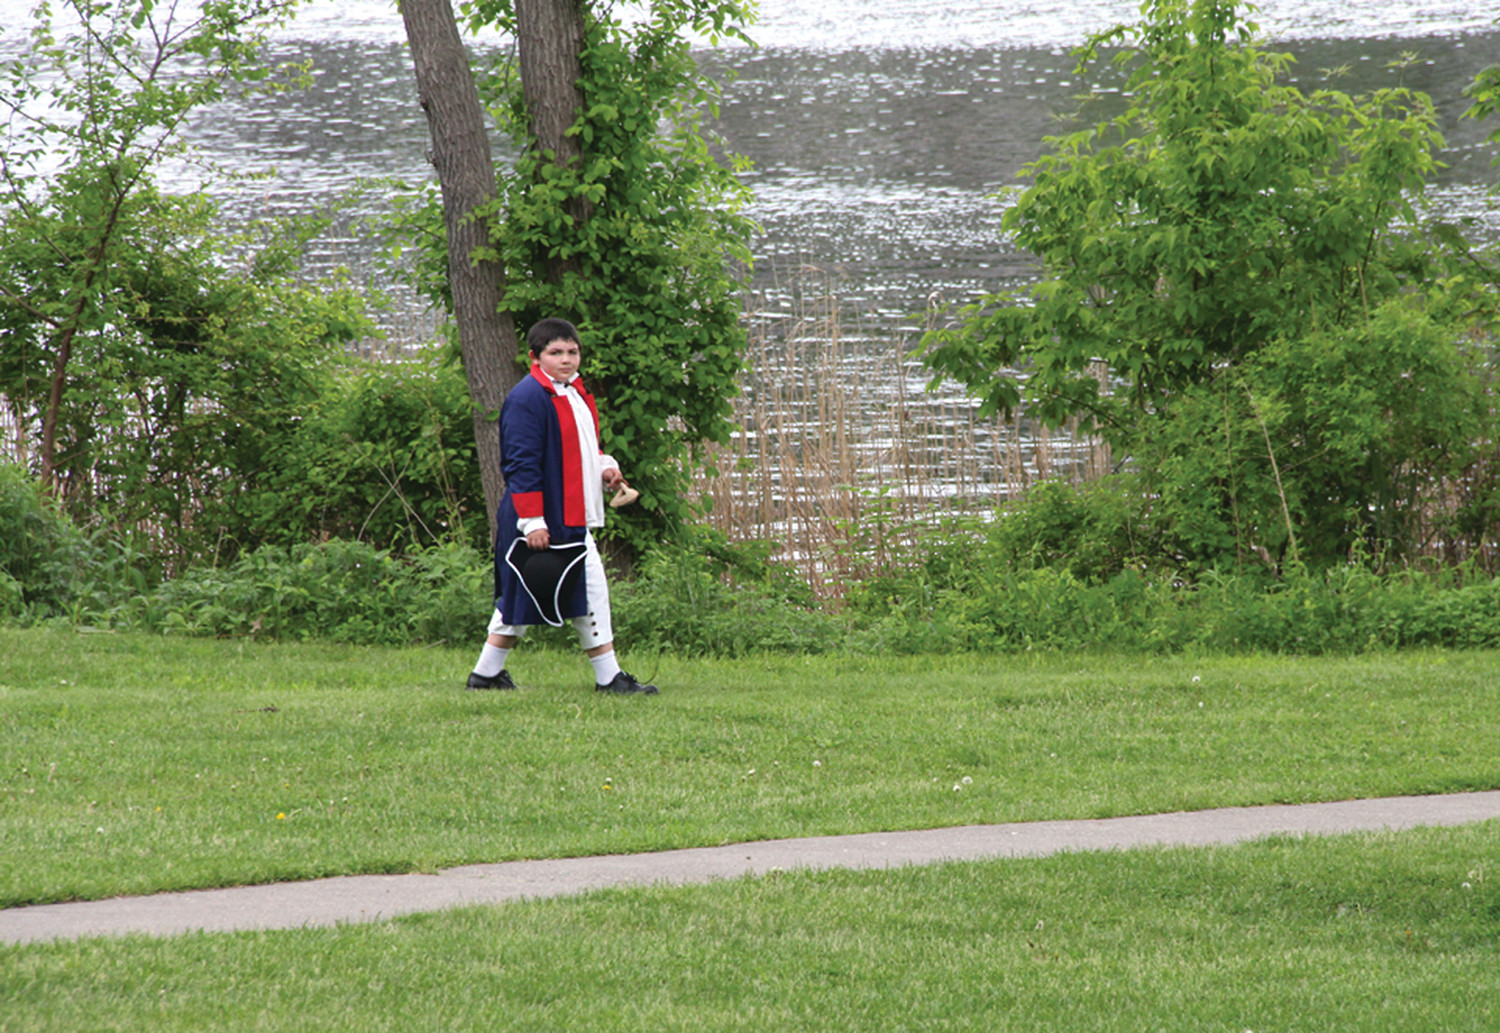 CALLING IT A DAY: Finn Meehan heads for the Aspray Boathouse to change after the last tour visited the Gaspee Monument on Peck Lane.